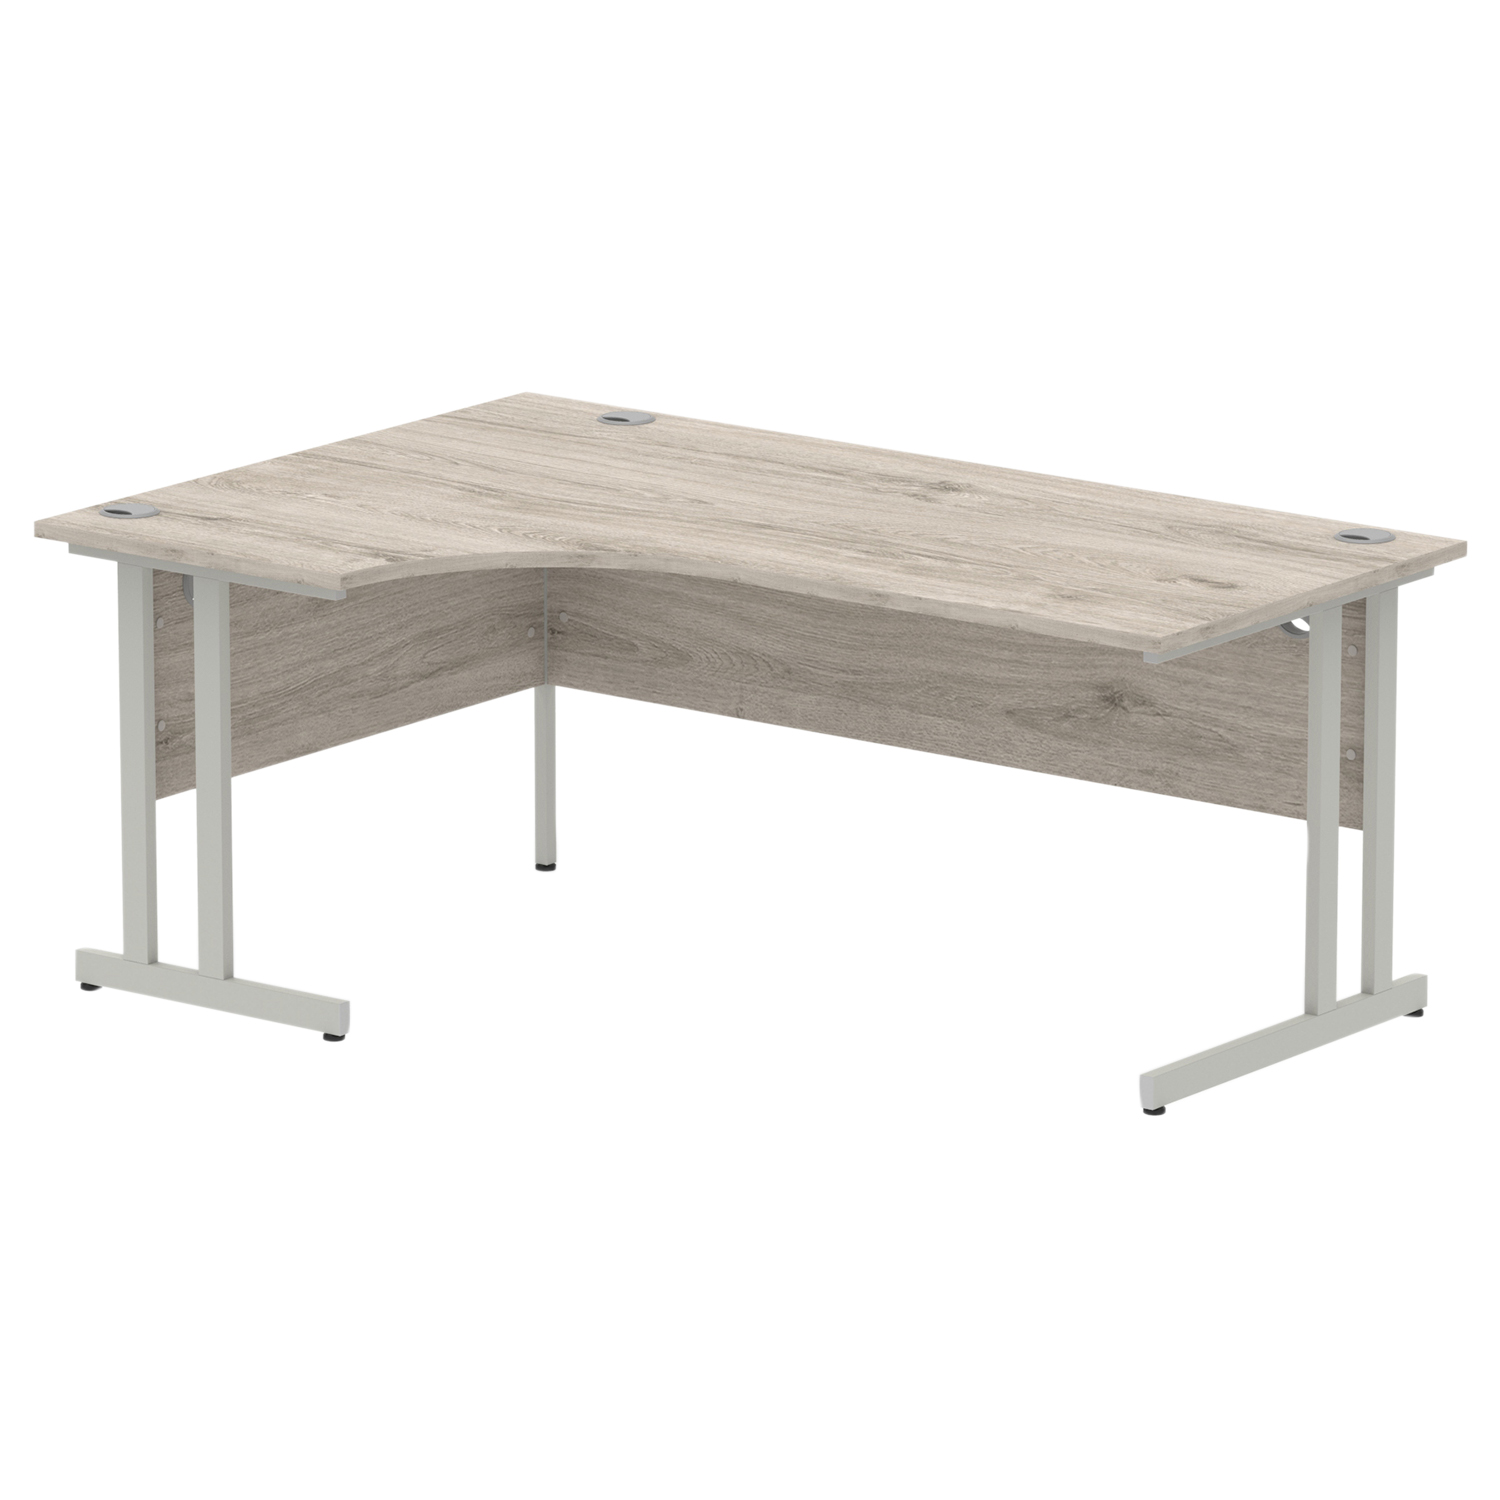 Trexus Radial Desk Left Hand Silver Cantilever Leg 1800mm Grey Oak Ref I003134